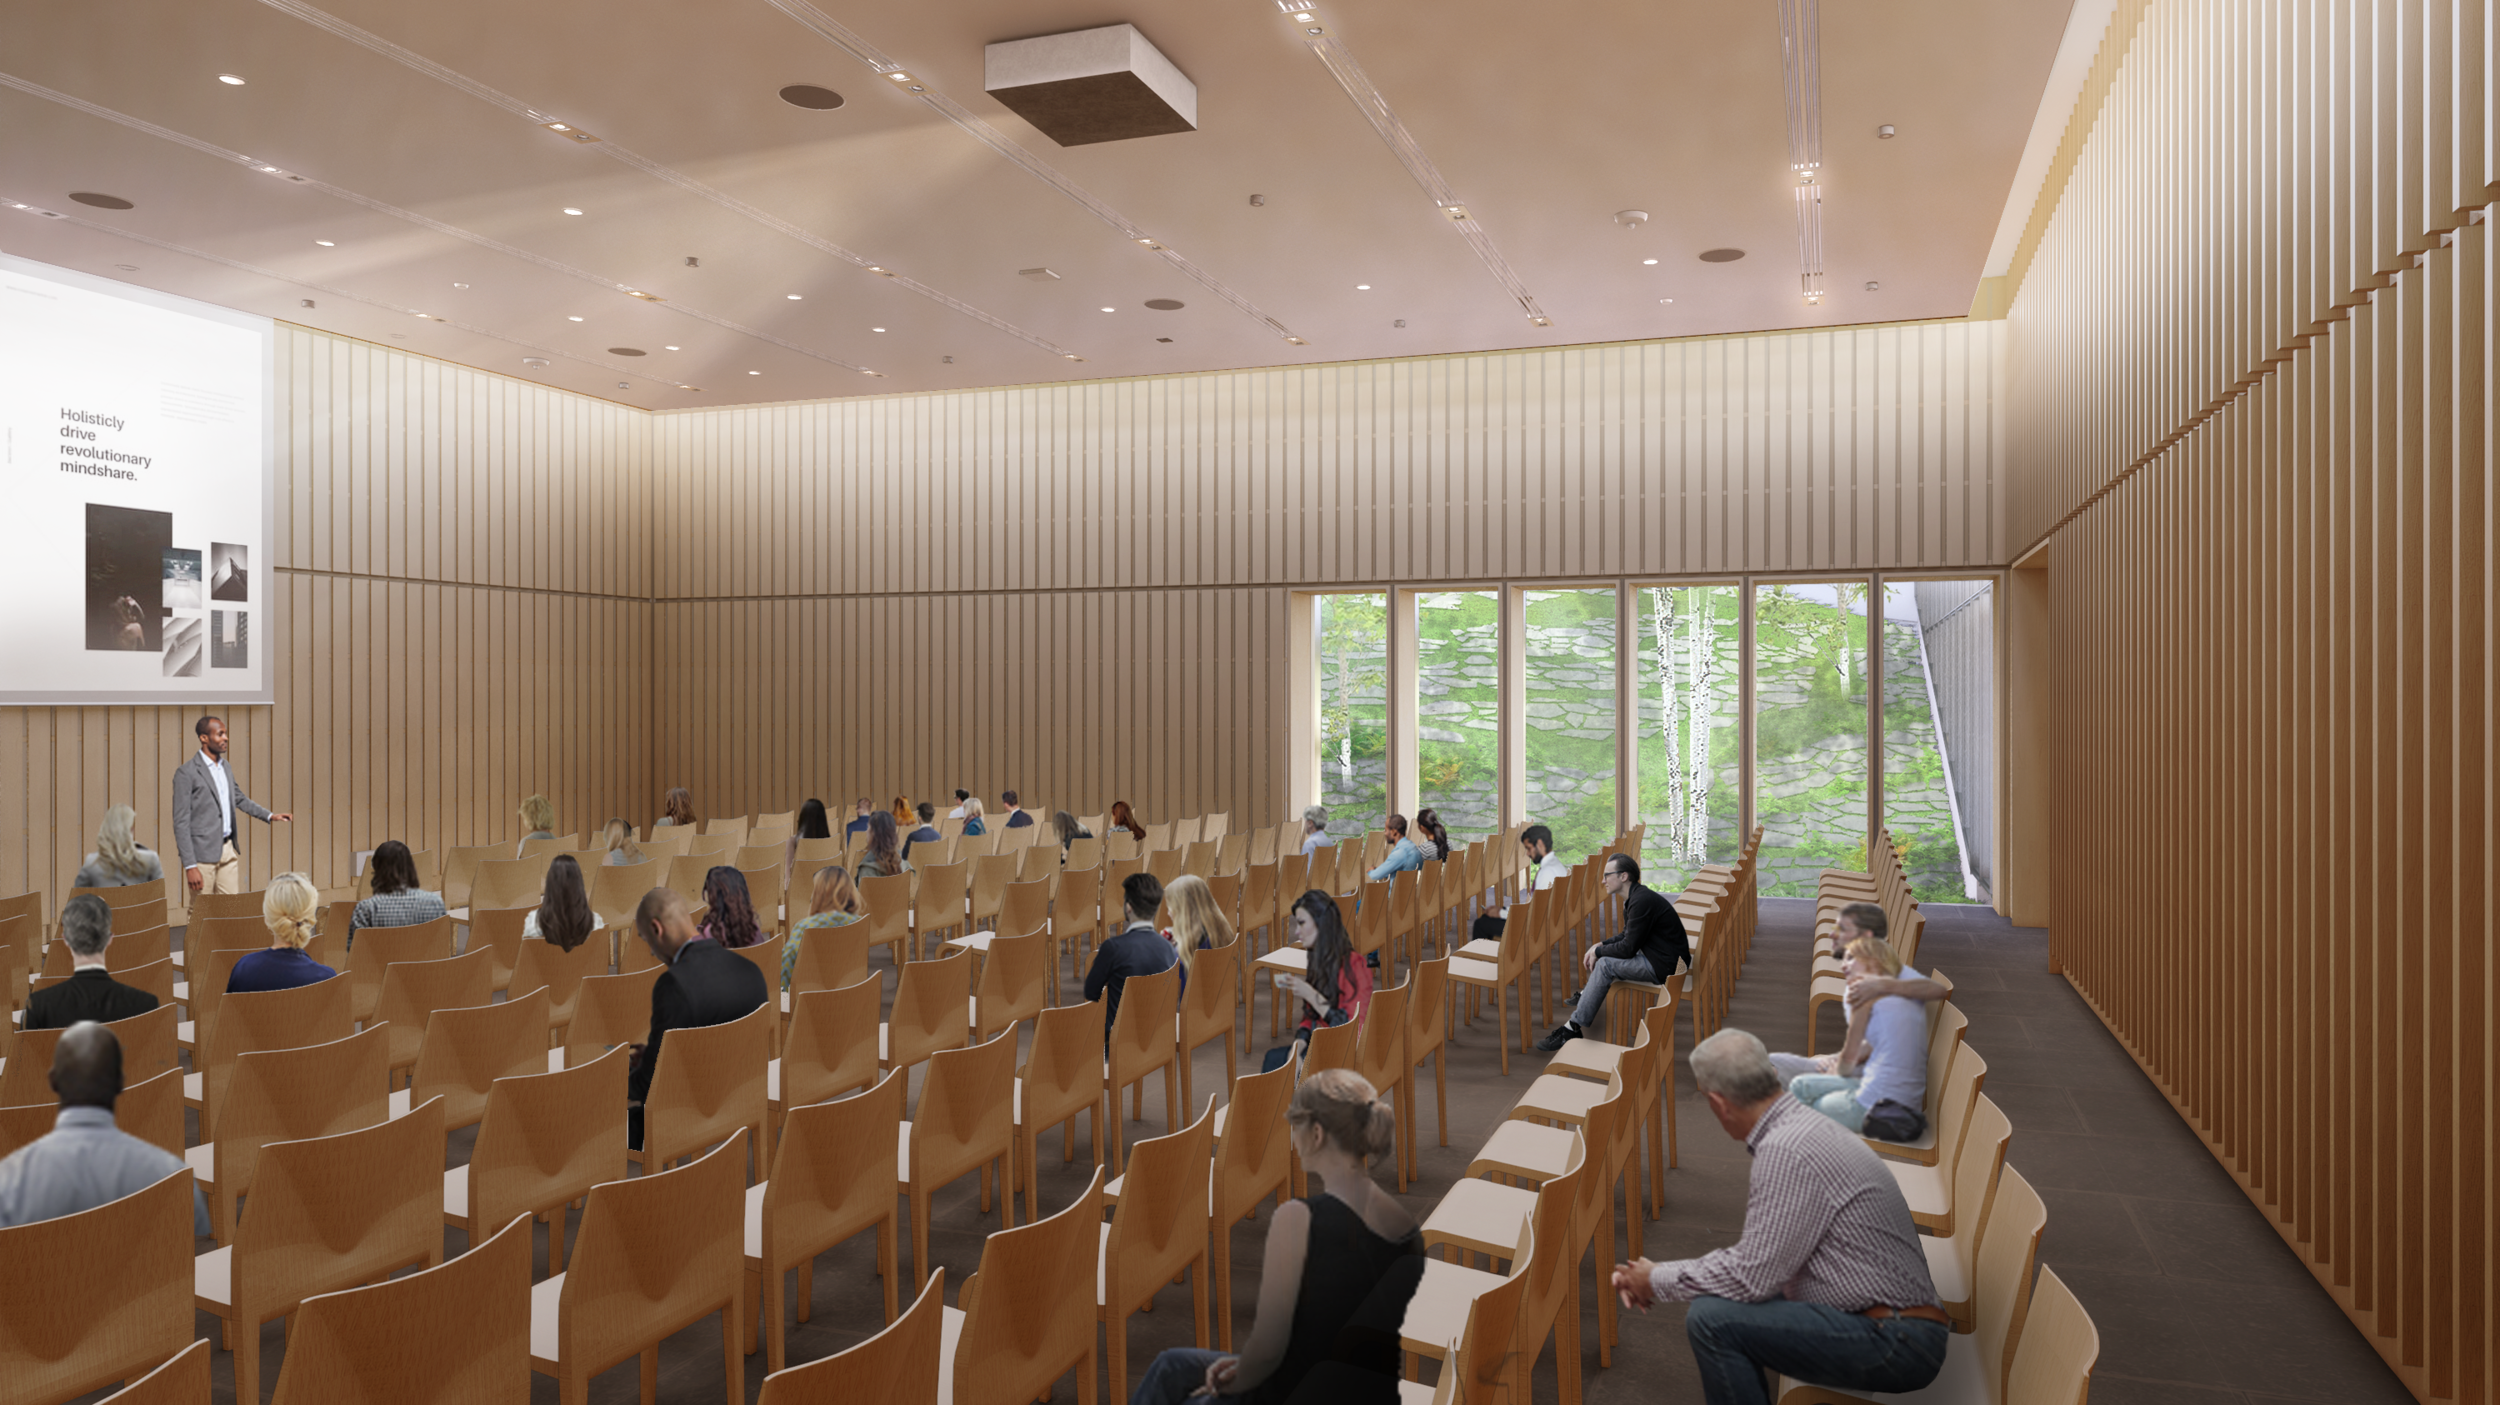 Lecture Hall with view of interior courtyard